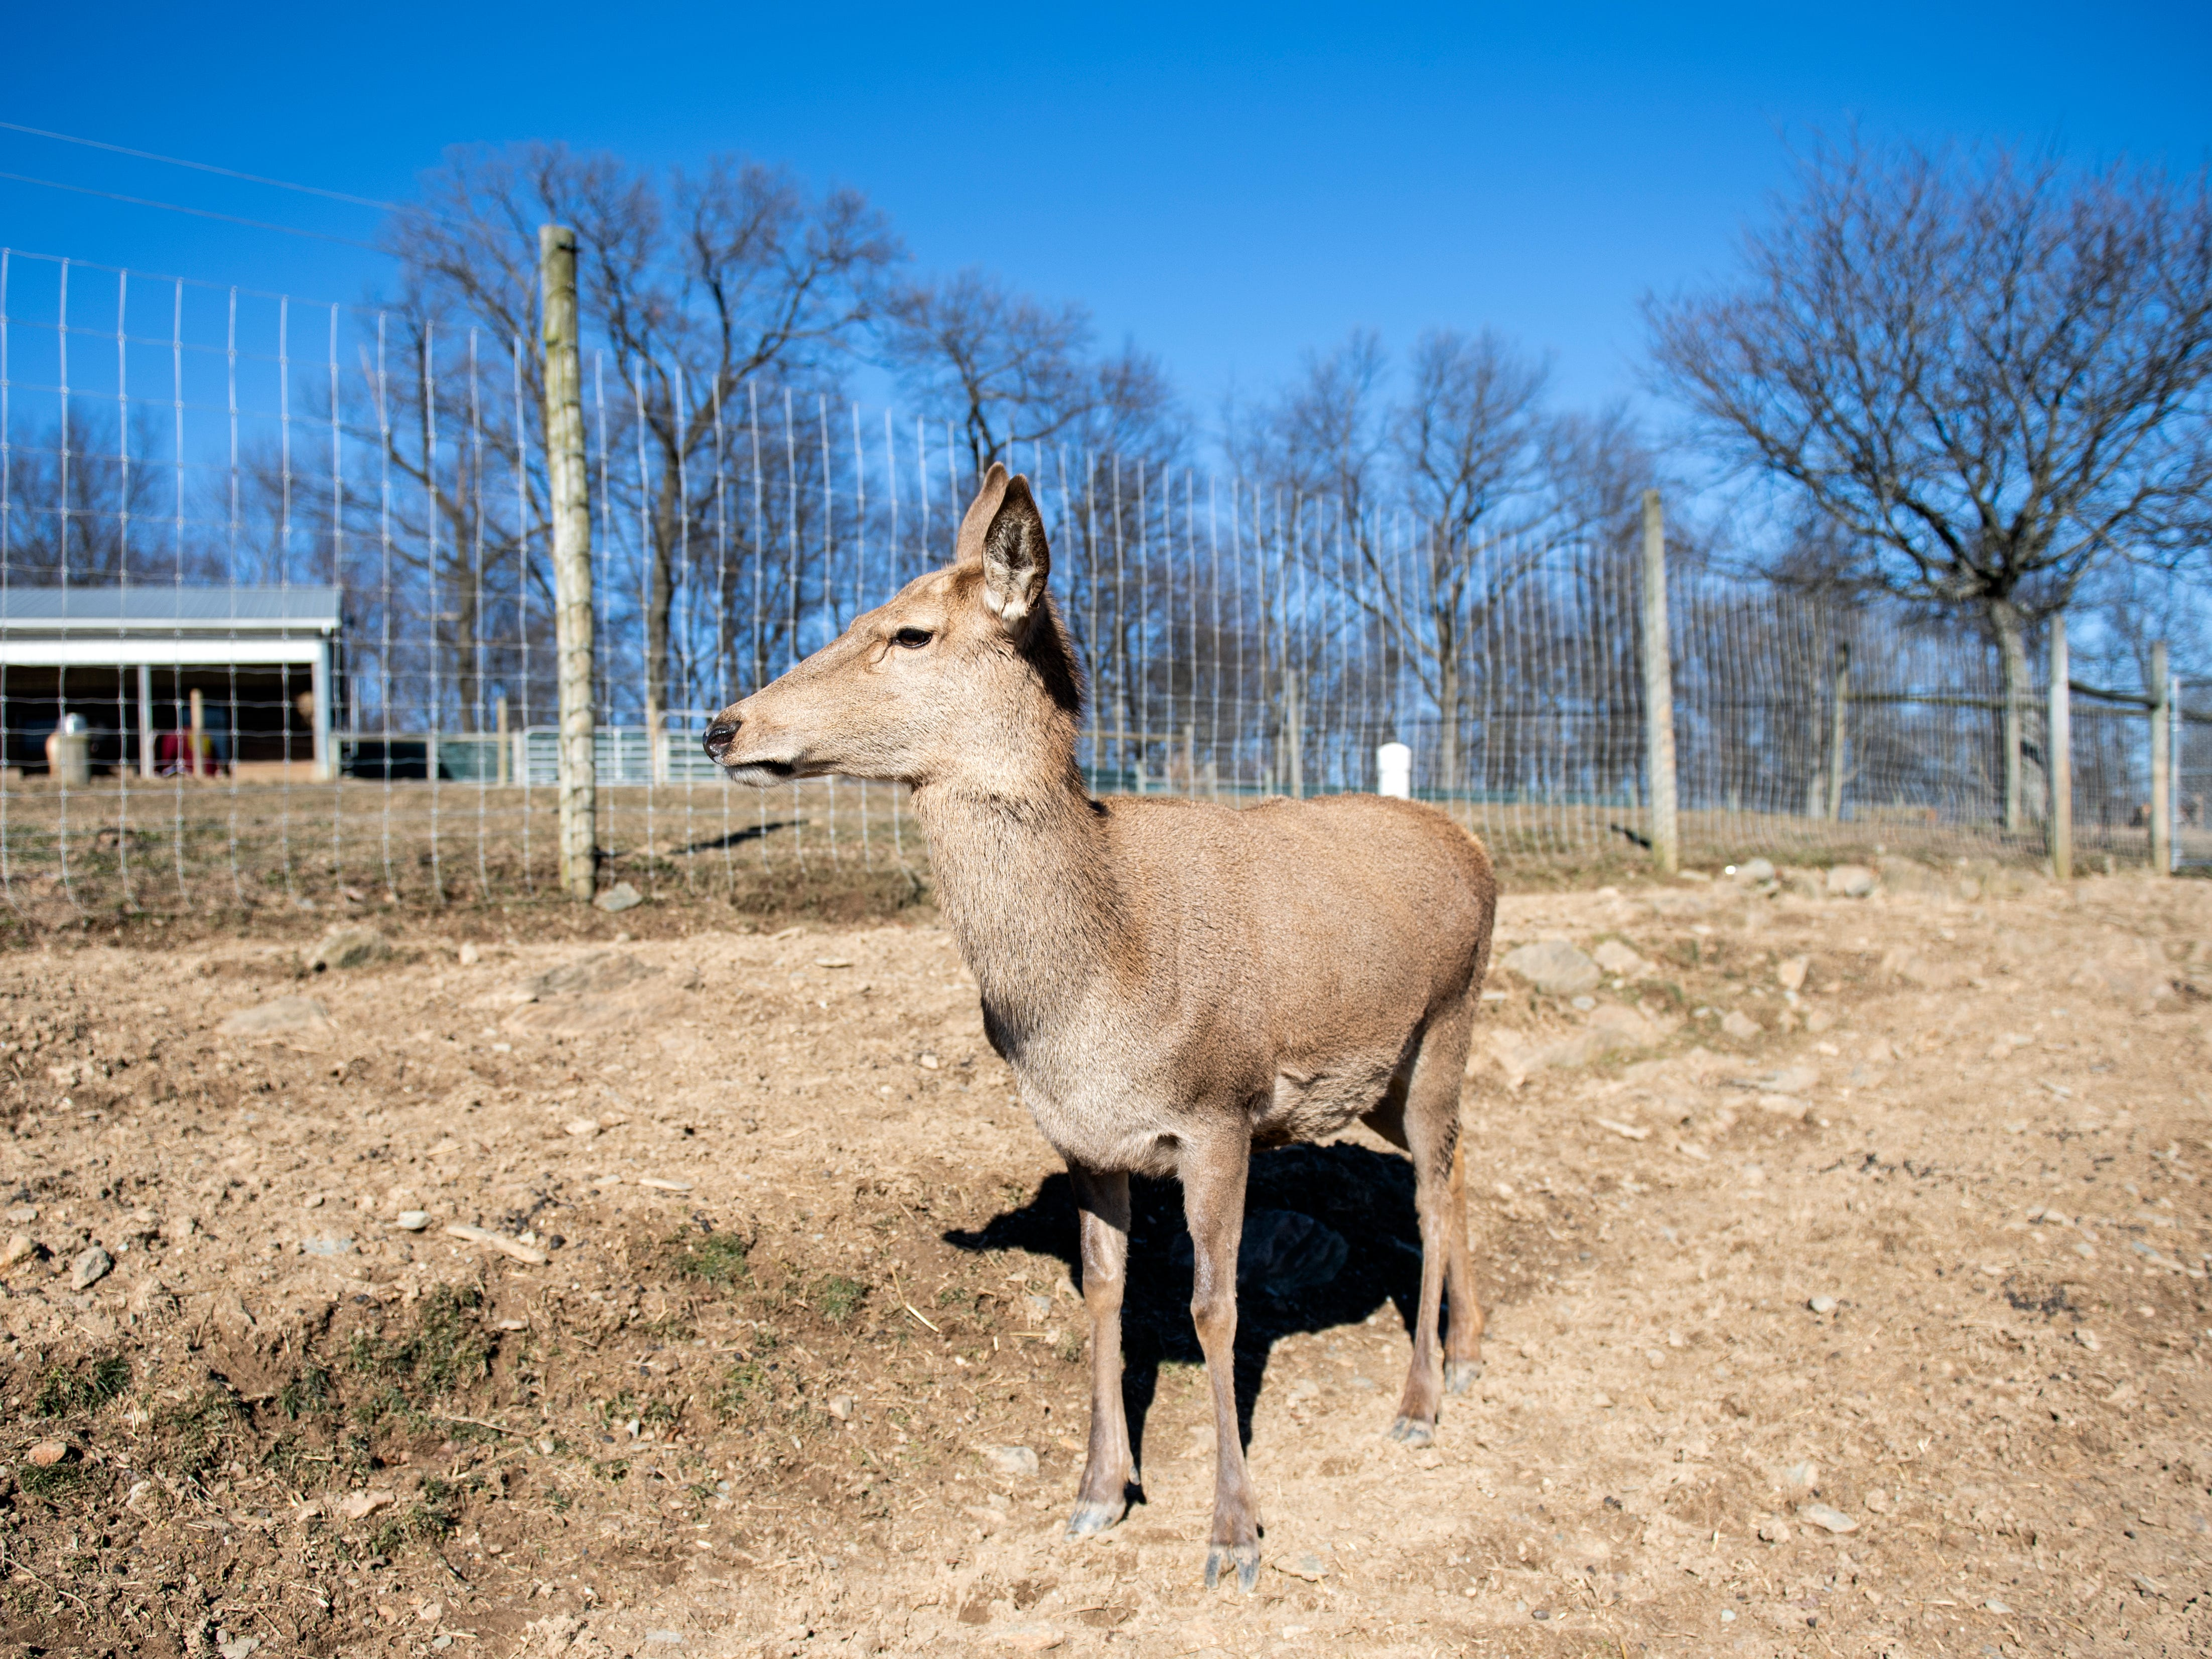 Bambi, a 14-year-old Red deer, is the deer at Highbourne Farms that won't be eaten. Seen here, Monday, Jan. 21, 2019, she's more of a pet than a breeding stock. The last time she was weighed, she was nearly 420-pounds. Highbourne Farms, in Dallastown, breeds Red deer for meat. It's one of the few places in the York-area where venison is readily available for purchase year-round.